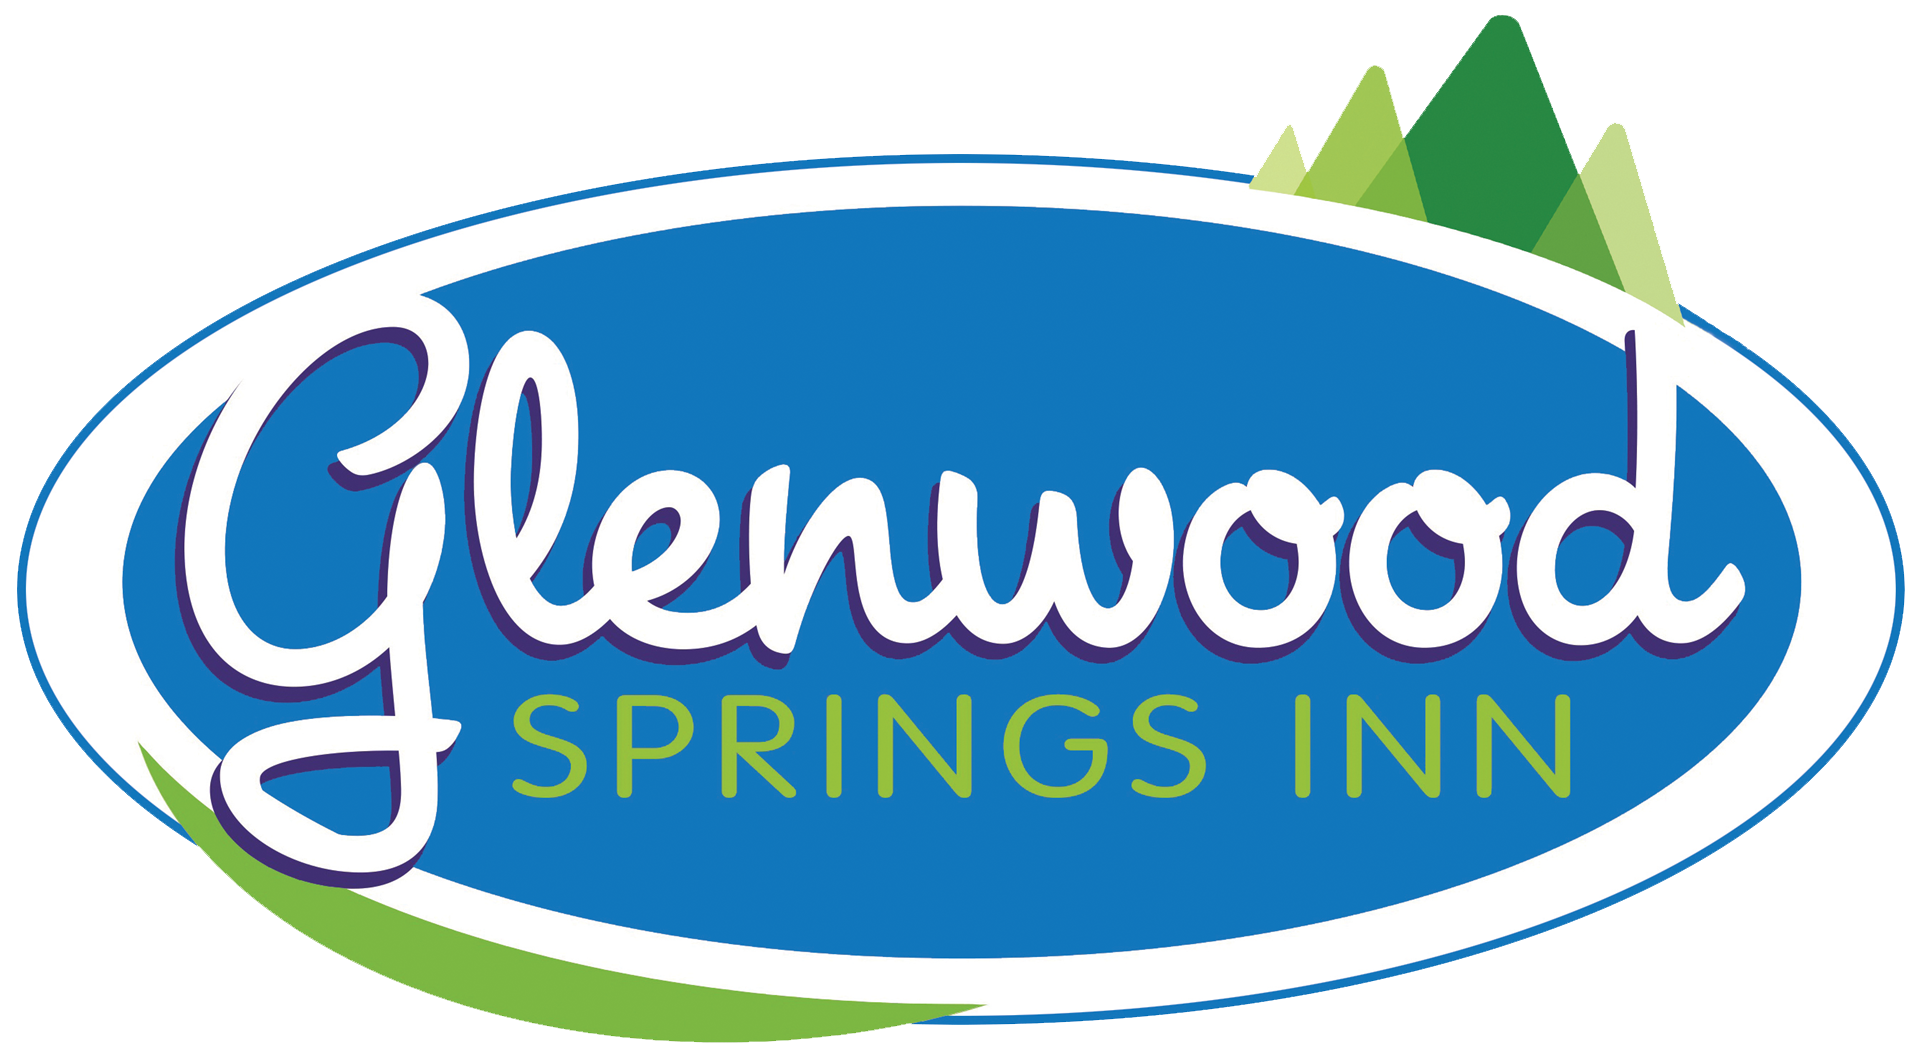 Glenwood Springs Inn